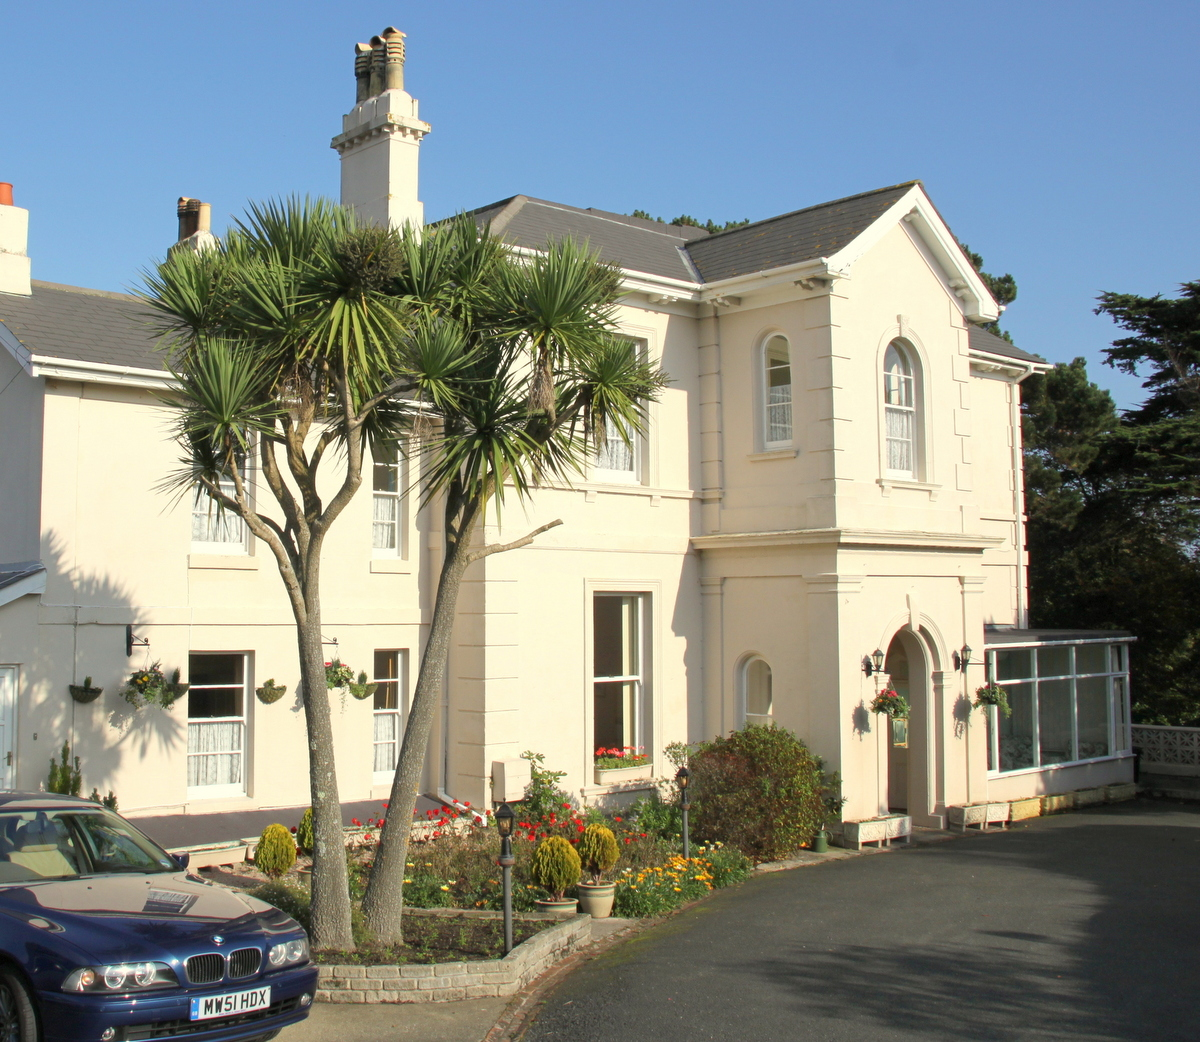 The Muntham Apartments, Torquay